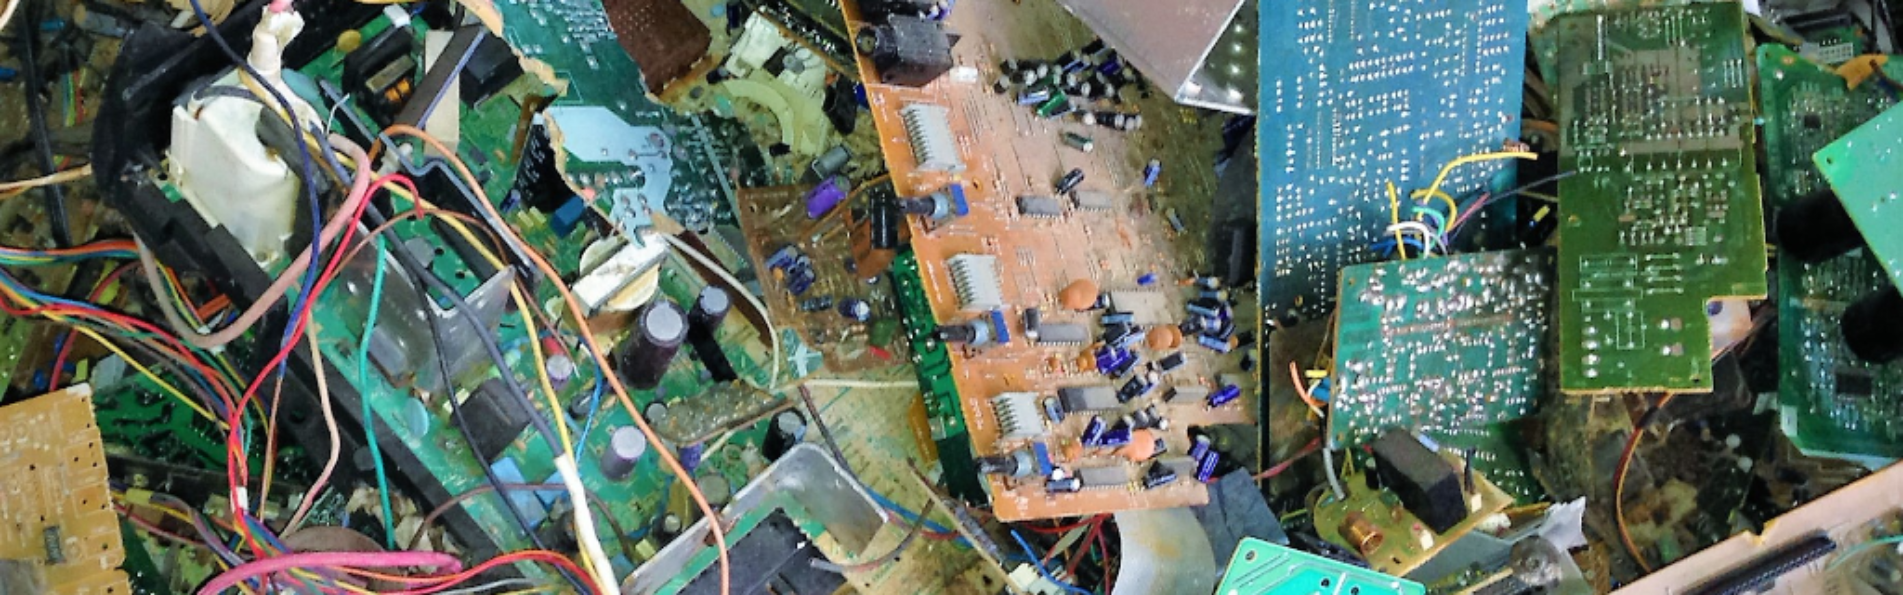 Computers and Electronics Recycling